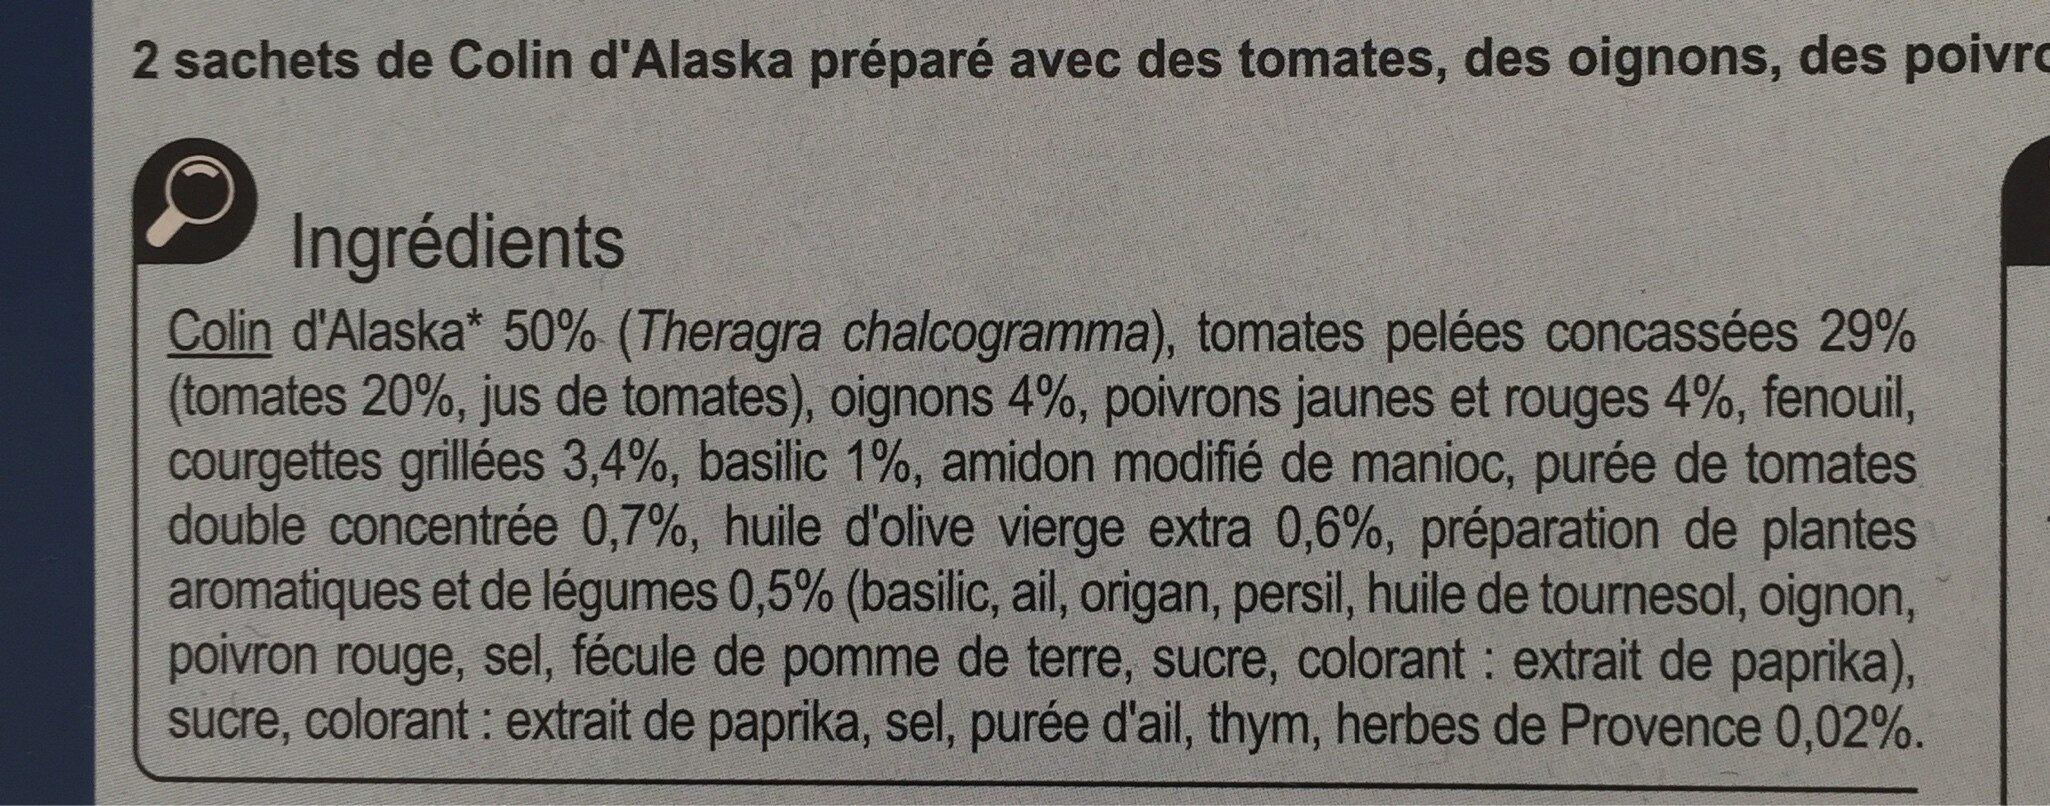 Colin d'Alaska sauce provençale - Ingredients - fr